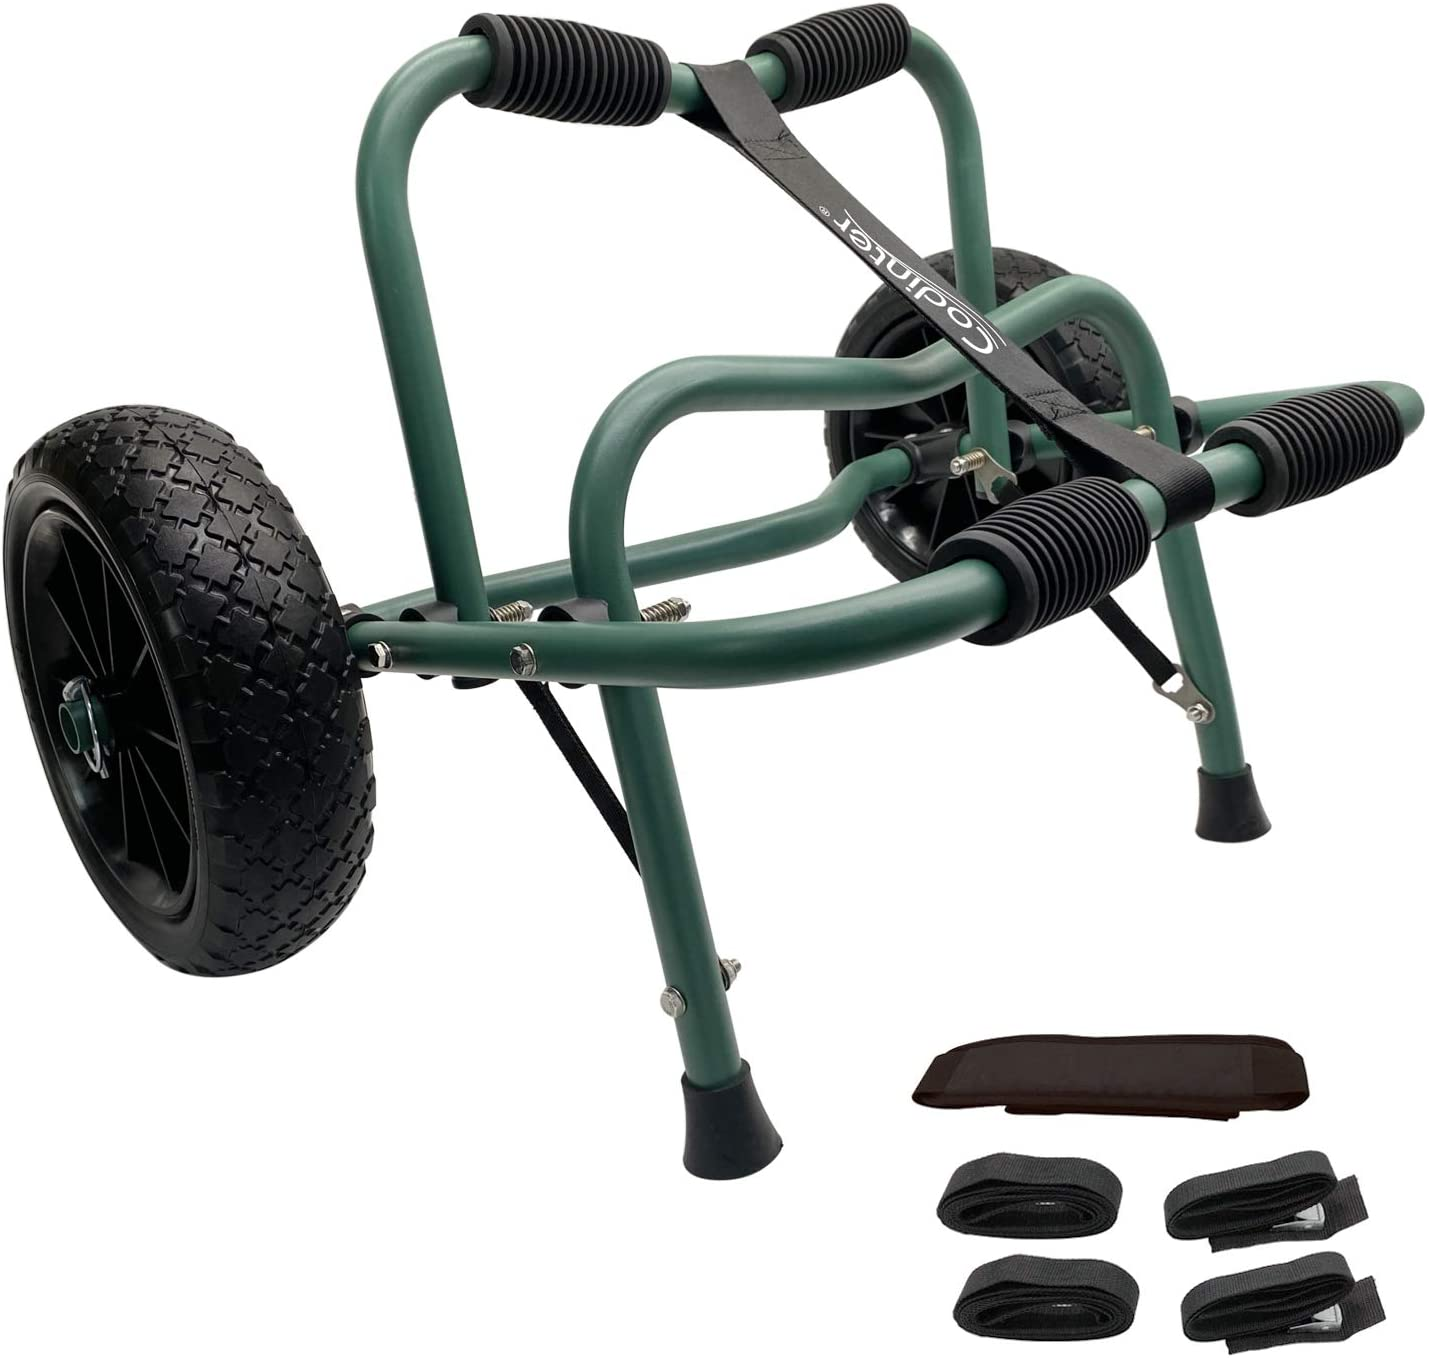 Codinter Kayak Cart, Canoe Dolly Trolley for Carrying Kayaks Boats Paddleboard Transport – Green